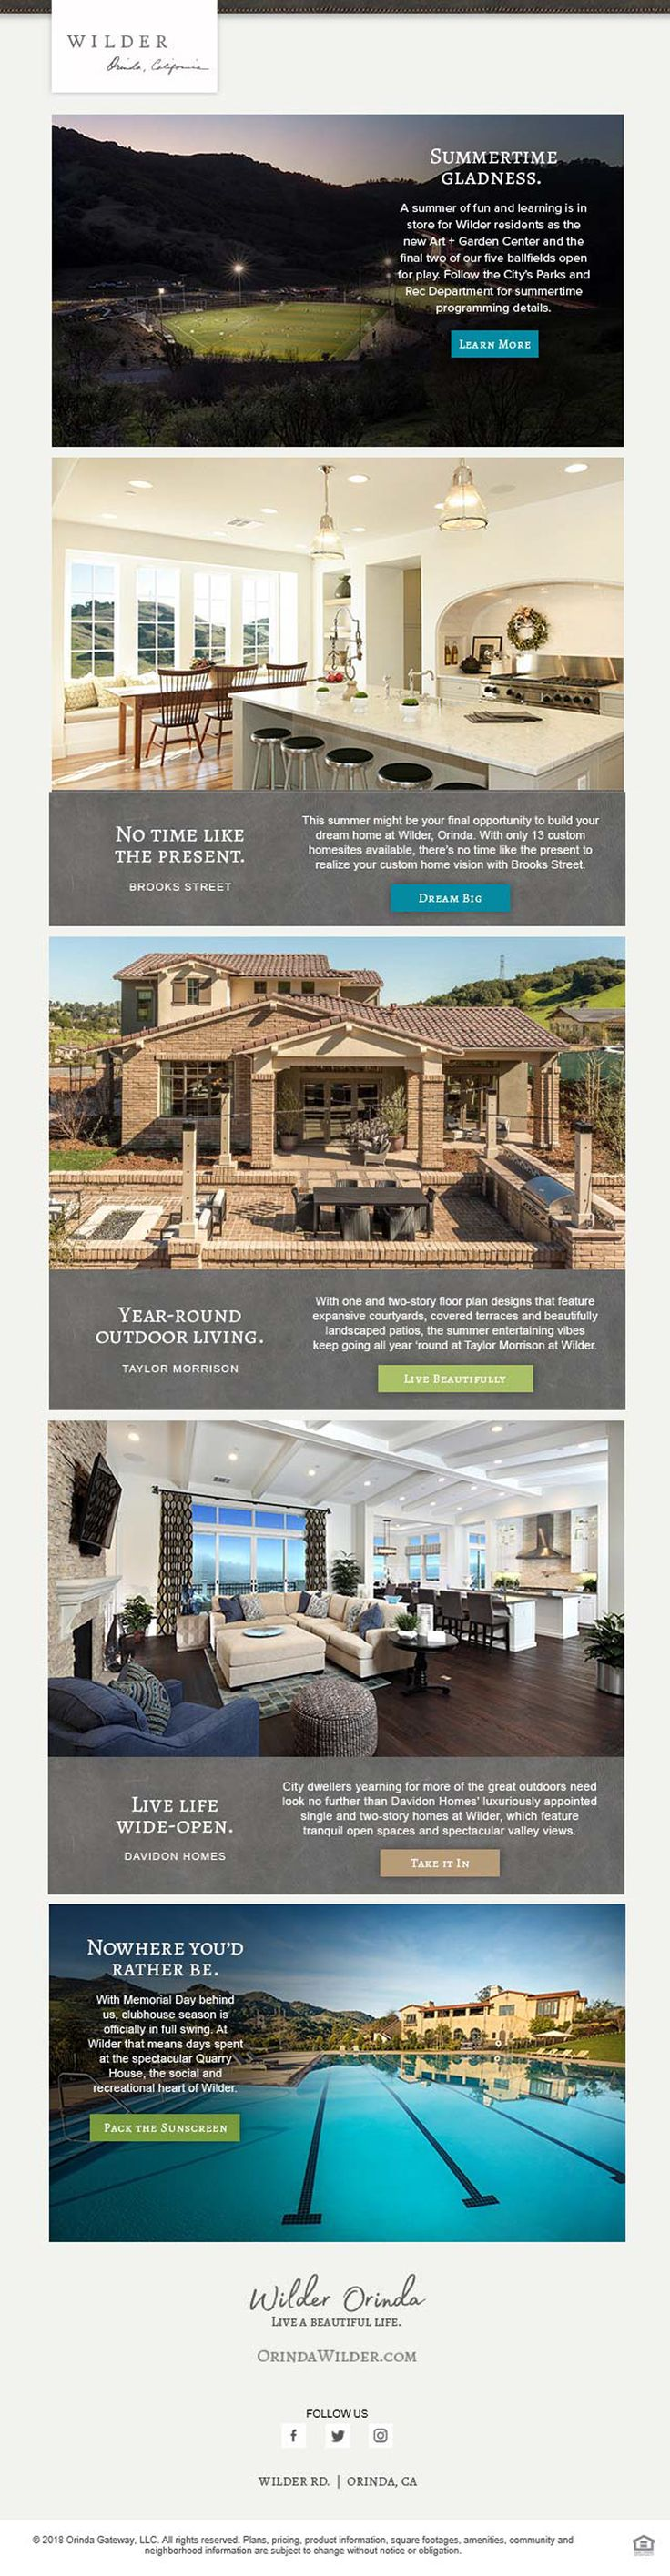 New Homes For Sale In Orinda, California Summertime Gladness In